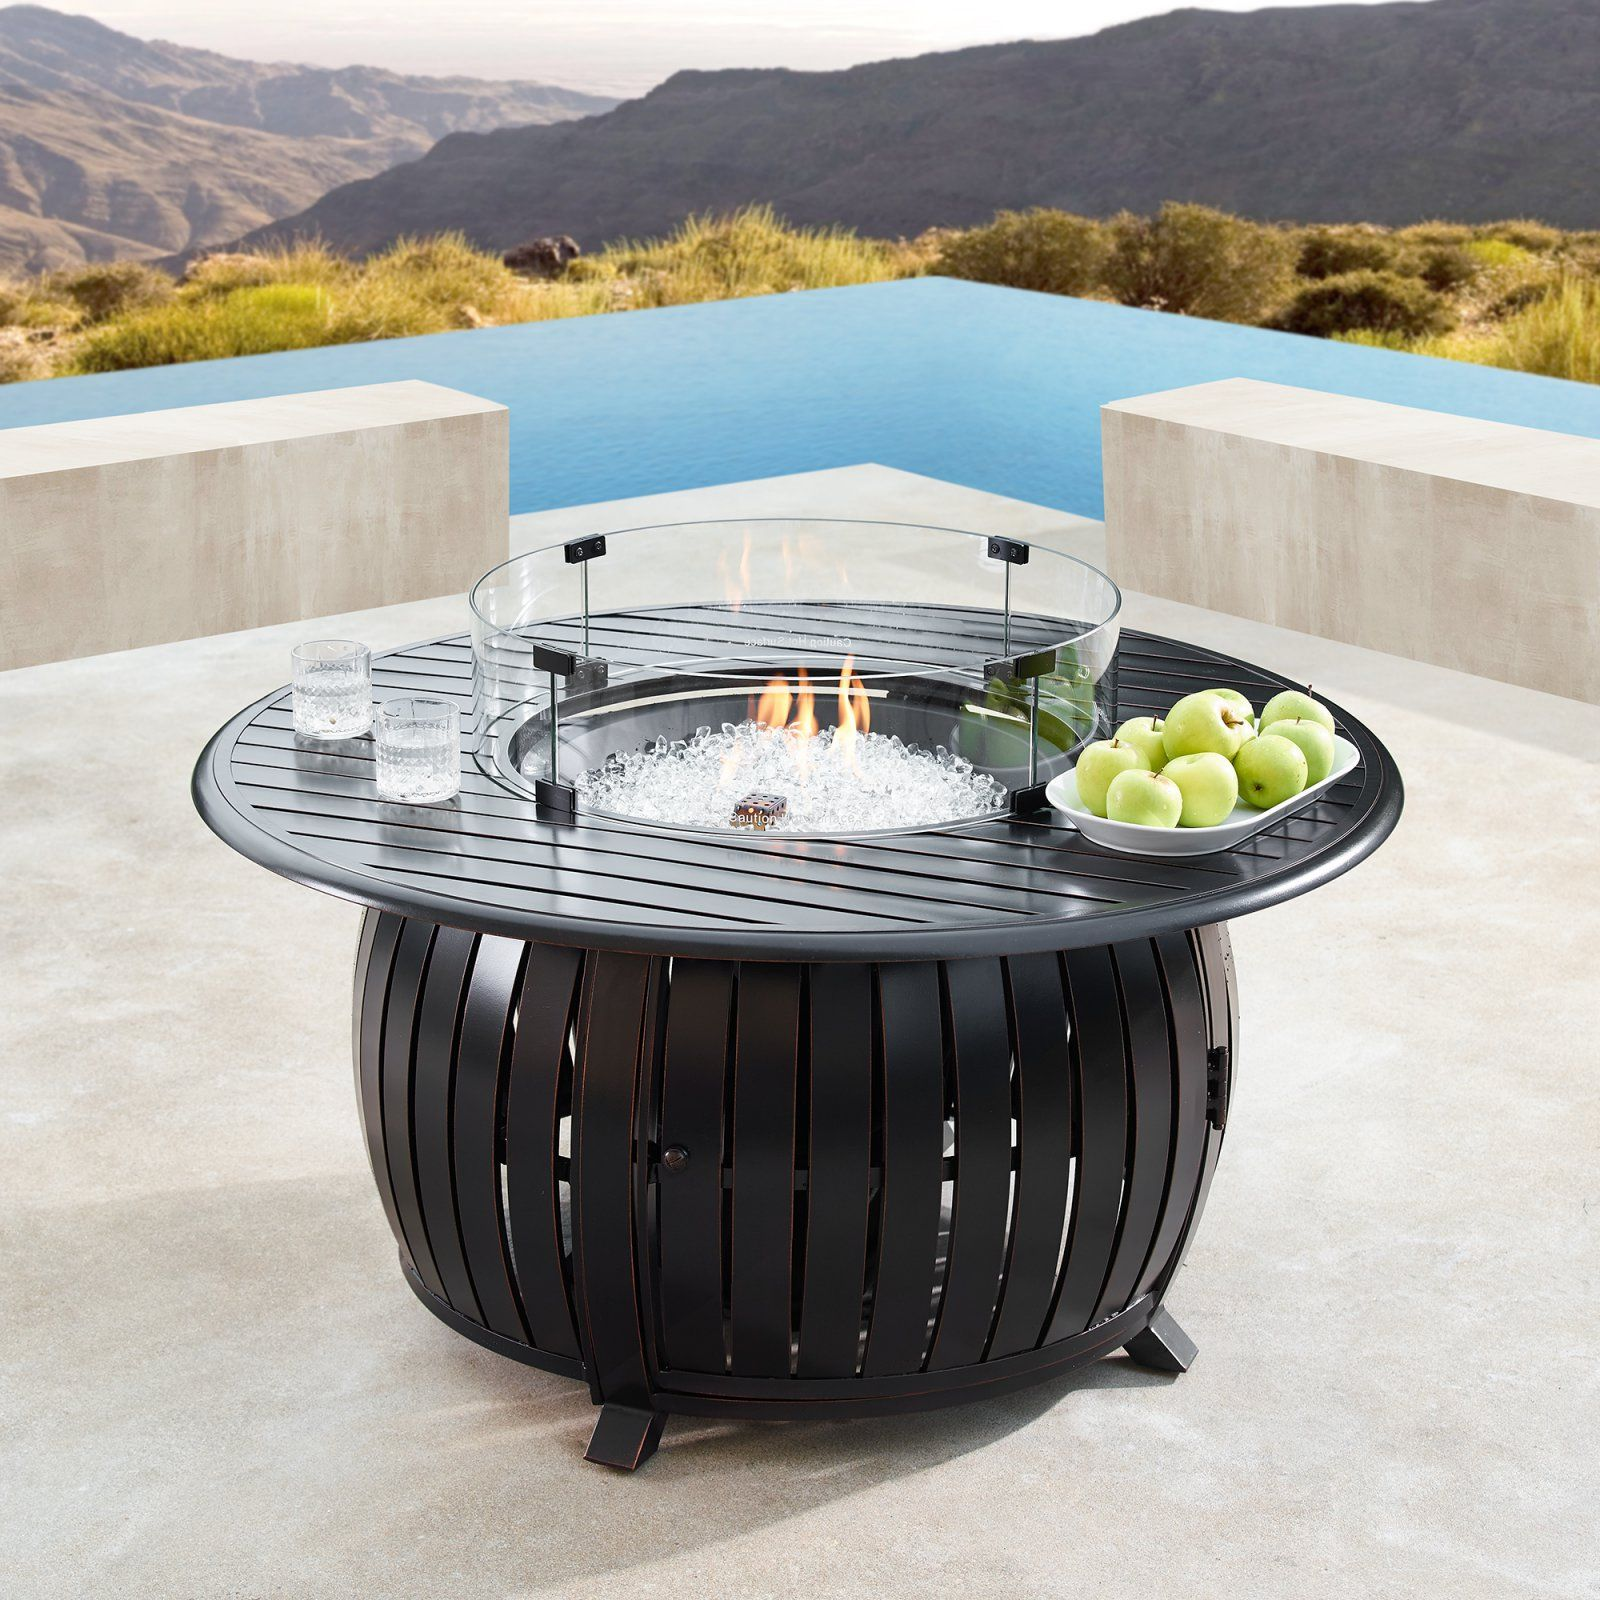 Oakland Living Ital 44 In Round Propane Fire Pit Table In 2020 Fire Table Fire Pit Table Round Propane Fire Pit